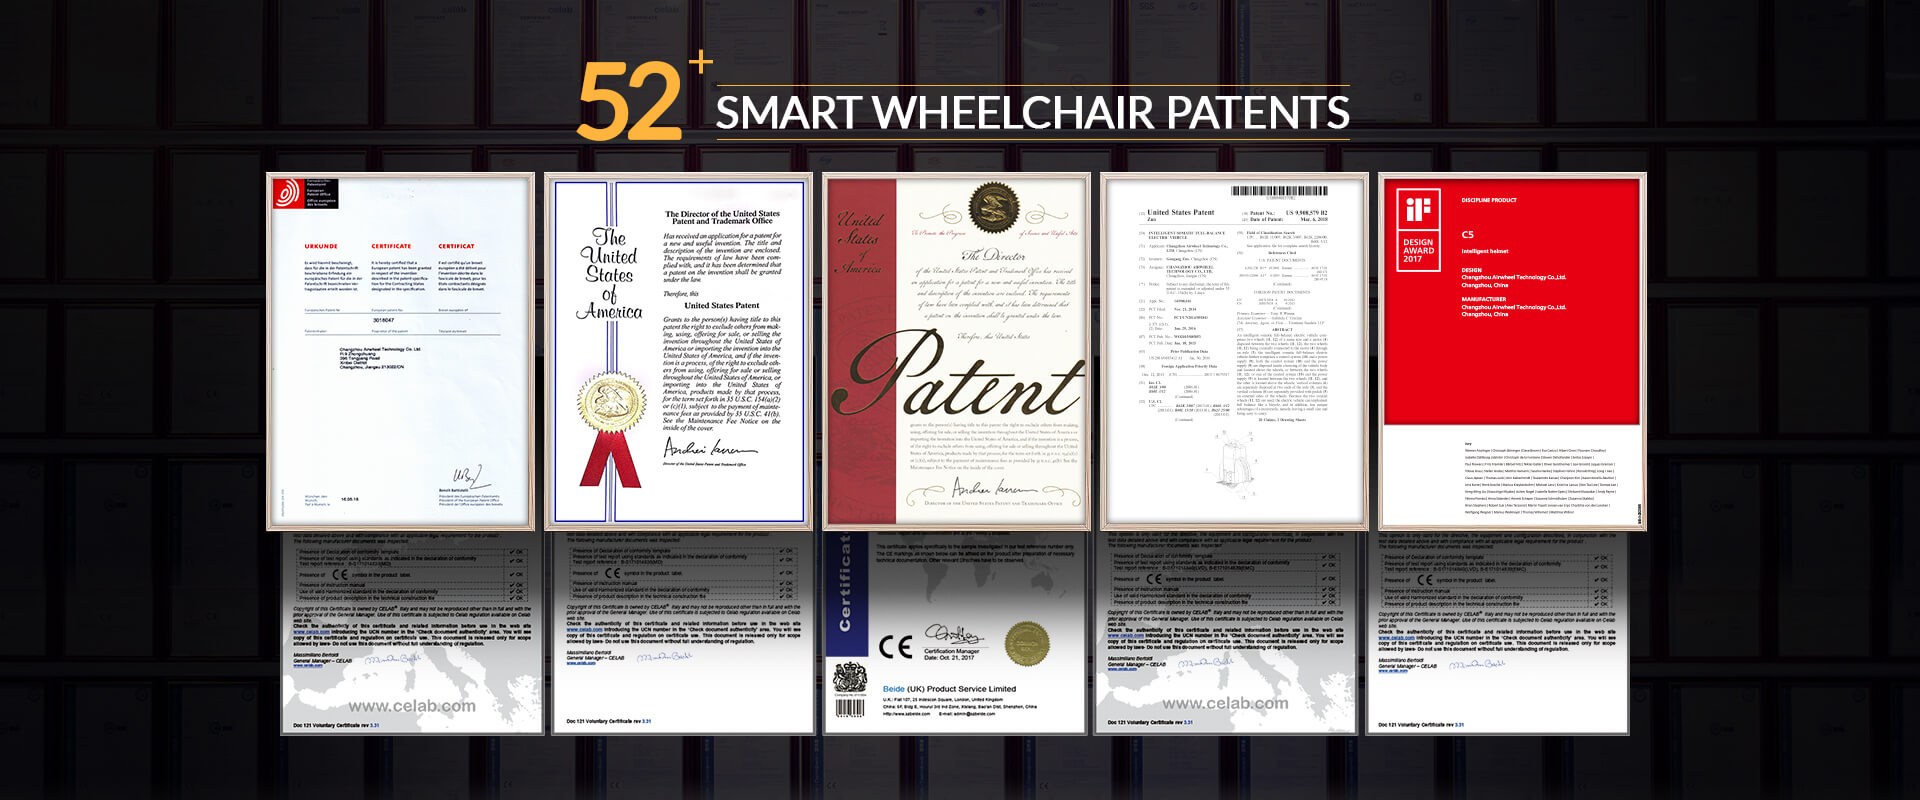 Airwheel Wheelchair Patents